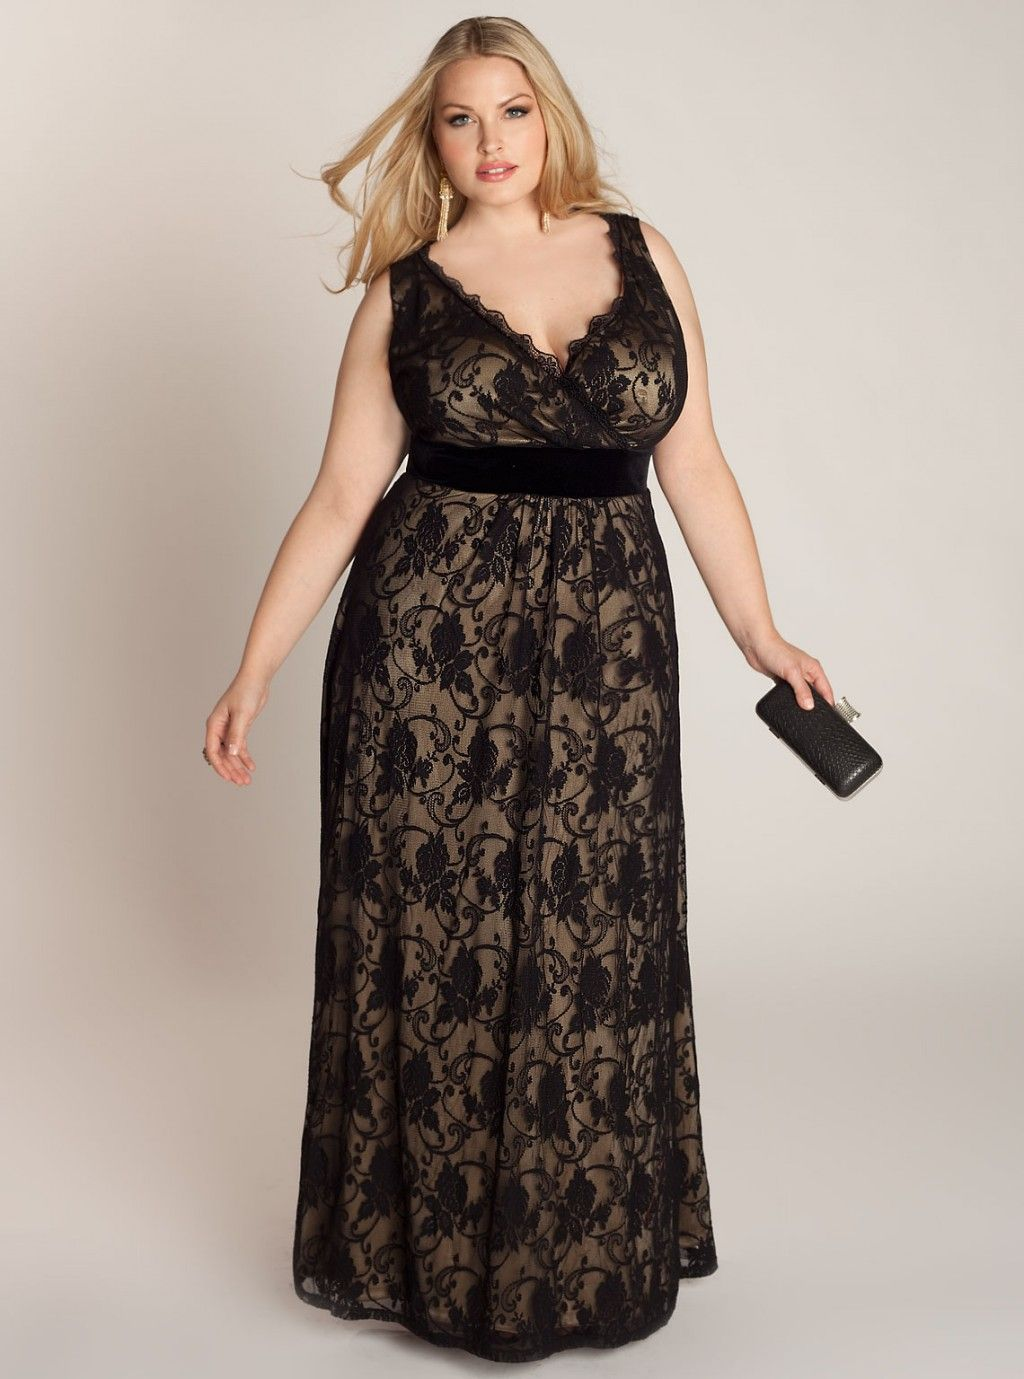 Plus size party dresses for weddings  Pin by marcela on IDEAS PARA MAMA  Pinterest  Gowns Curvy and